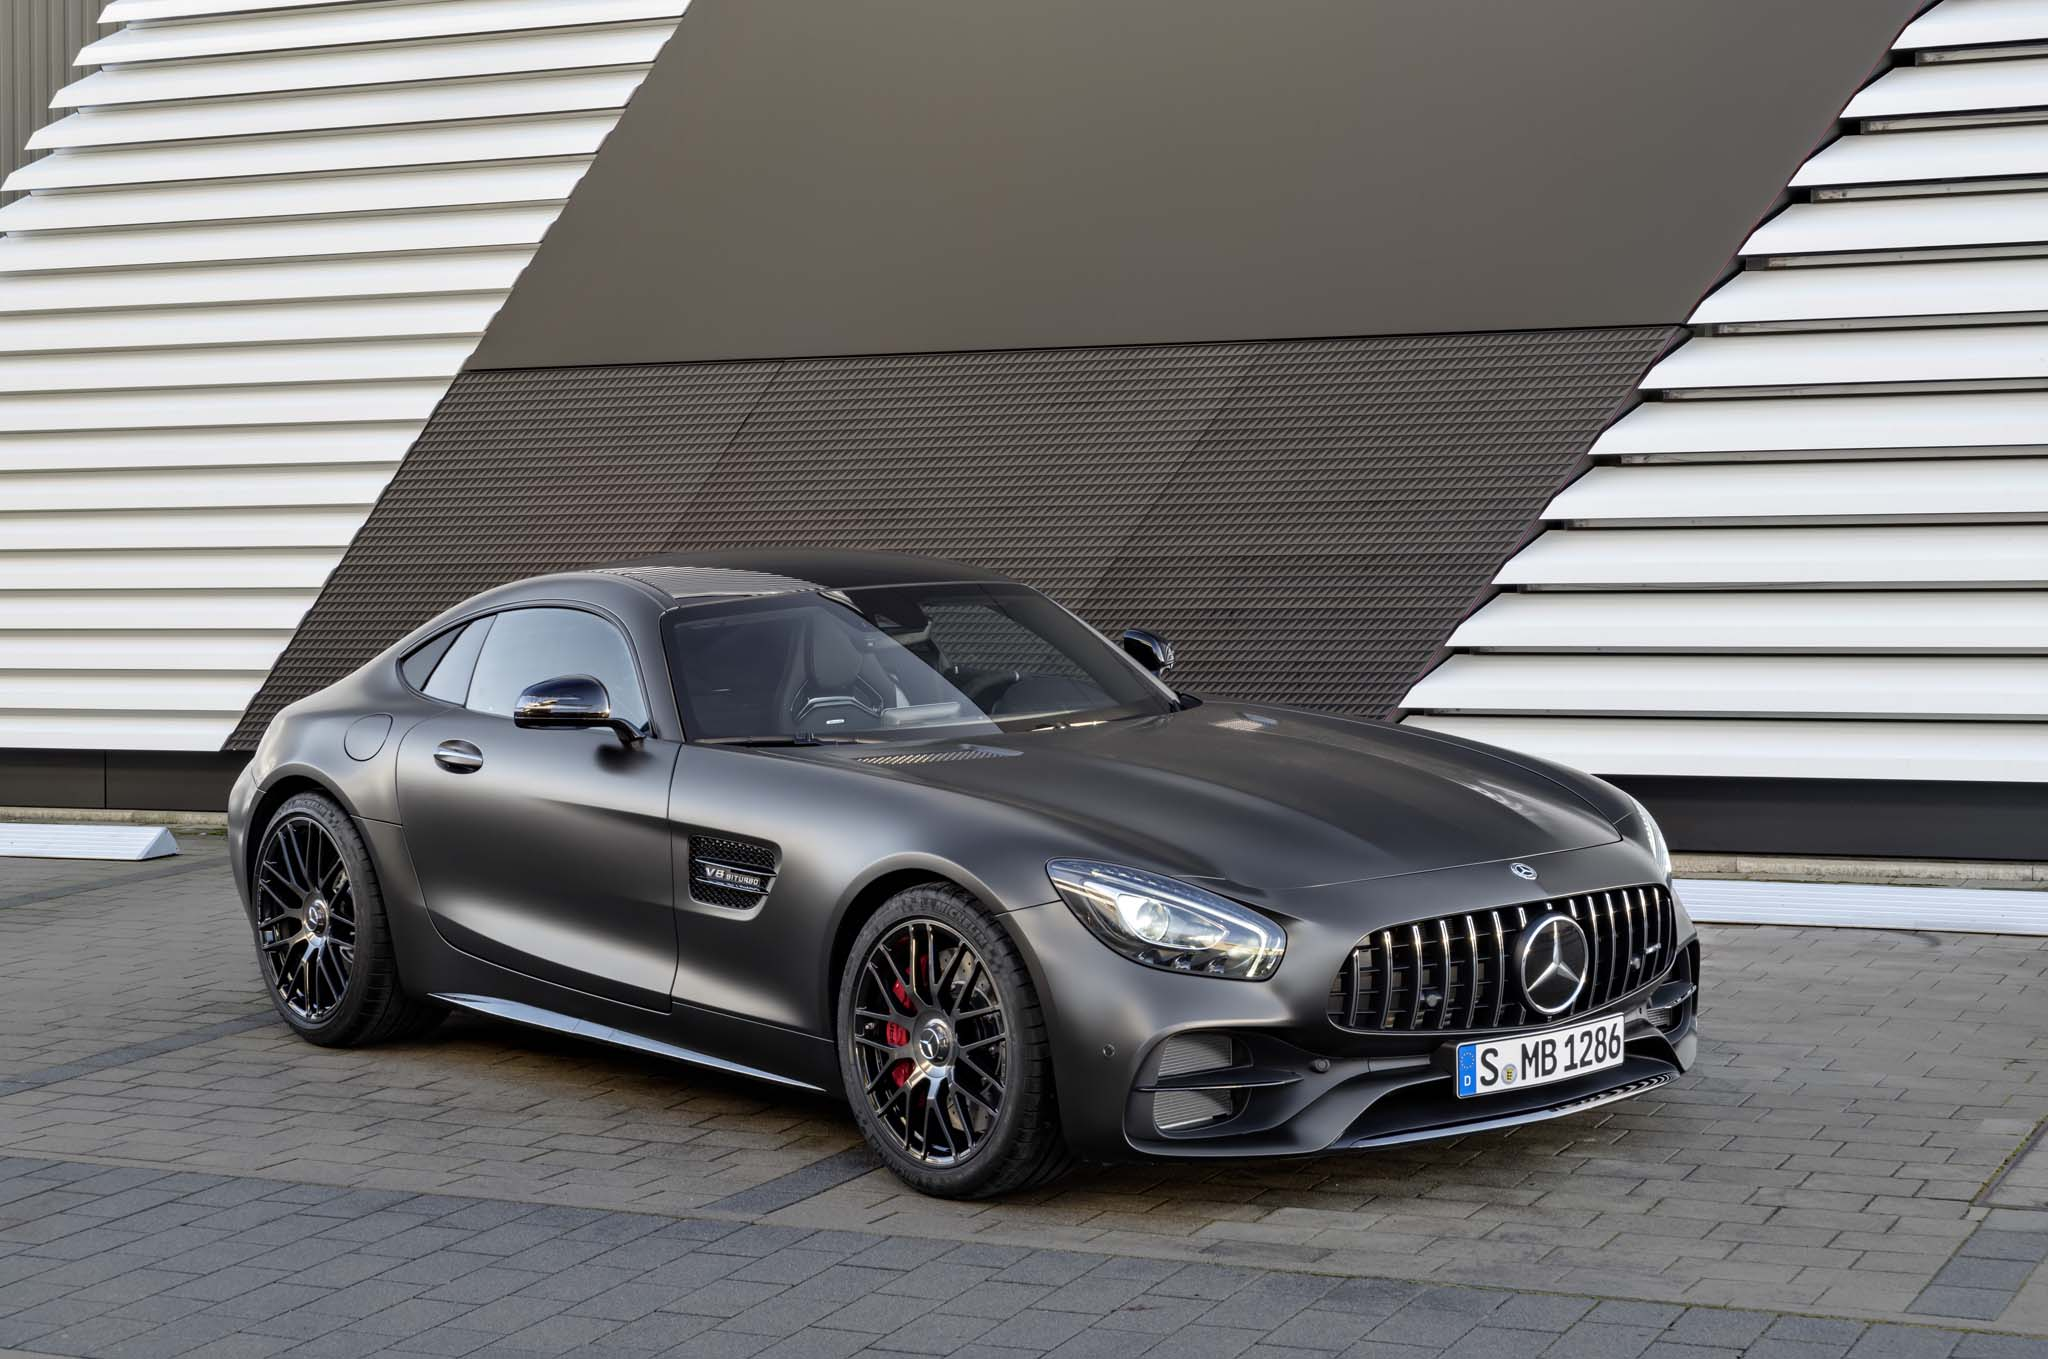 2018 mercedes-amg gt coupe and roadster pricing announced